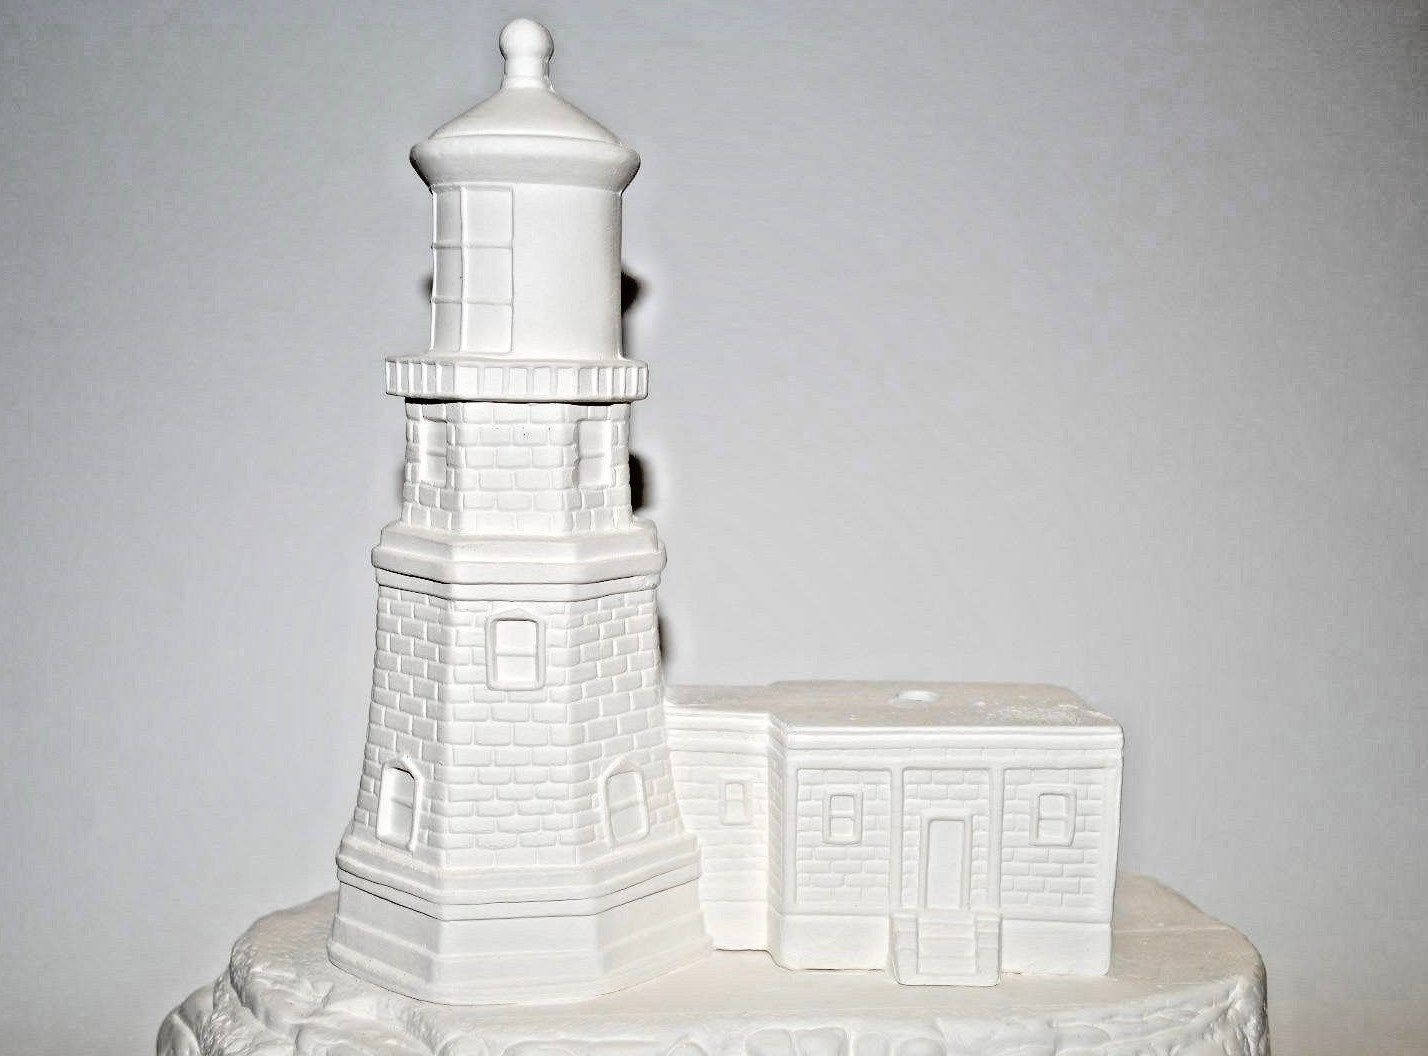 Lighthouse Ceramic Bisque Ready to Paint